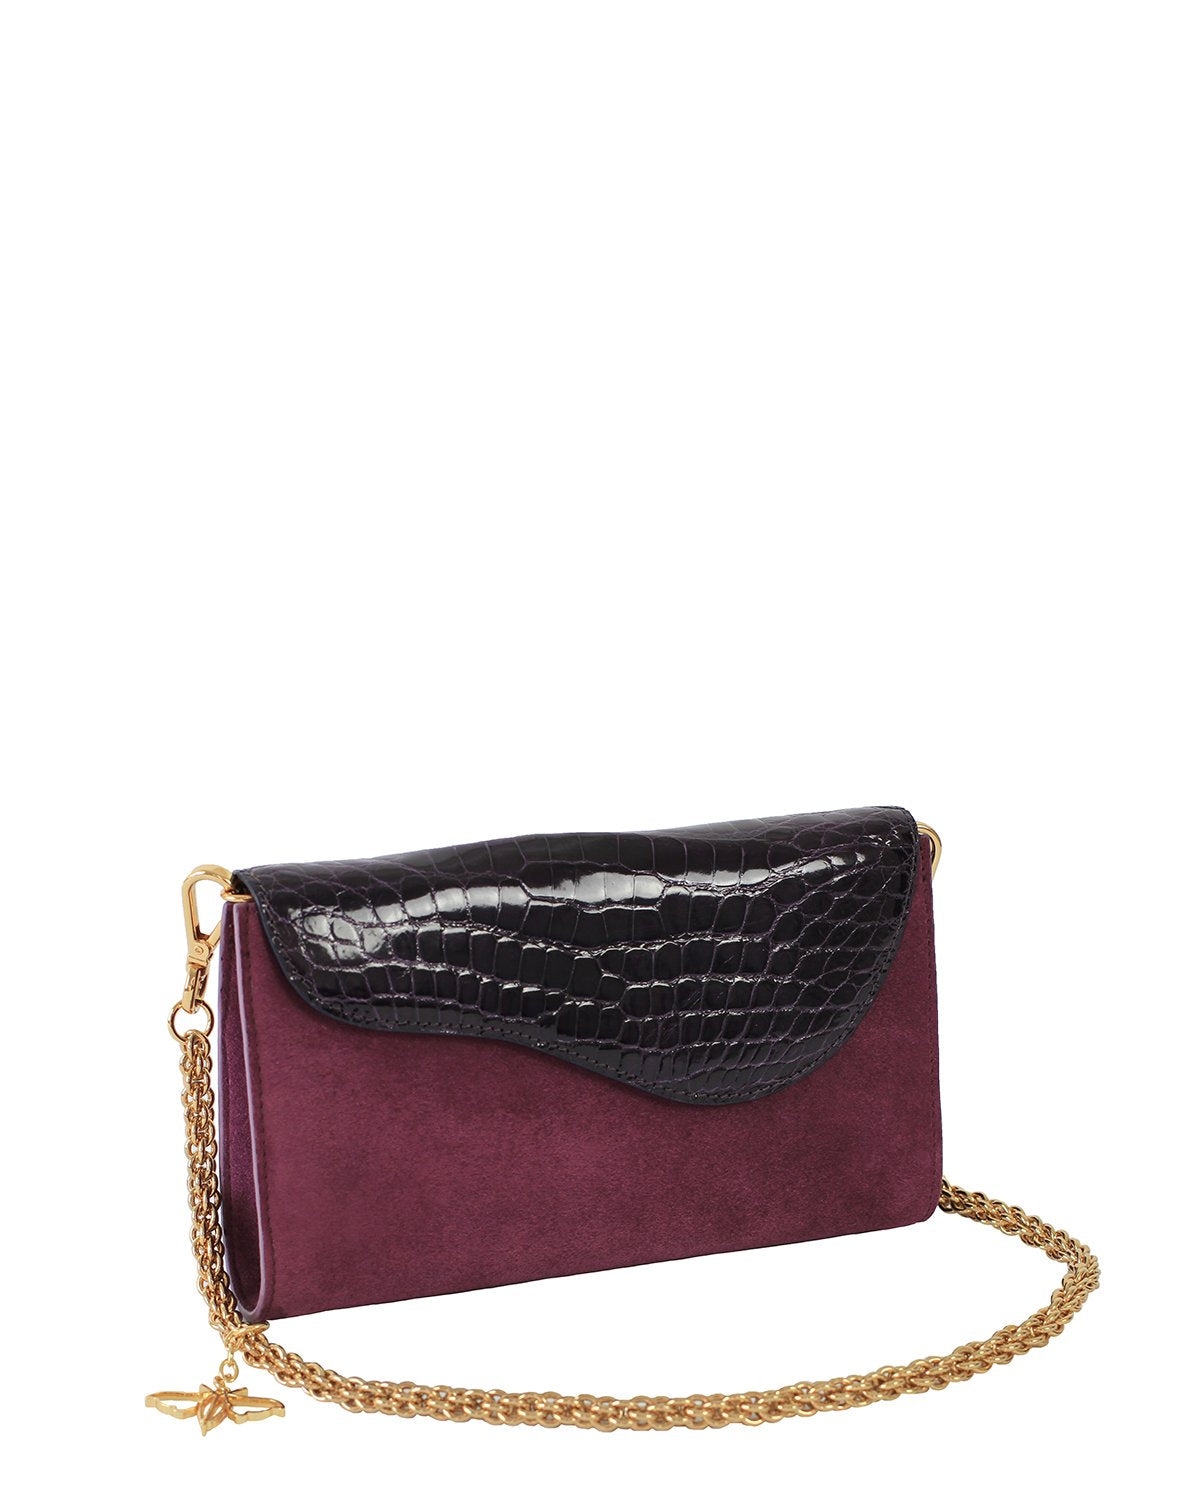 RED VIOLET GRAY ALLIGATOR OSTRICH OSCAR CLUTCH YELLOW GOLD YARA BASHOOR ANGLE VIEW